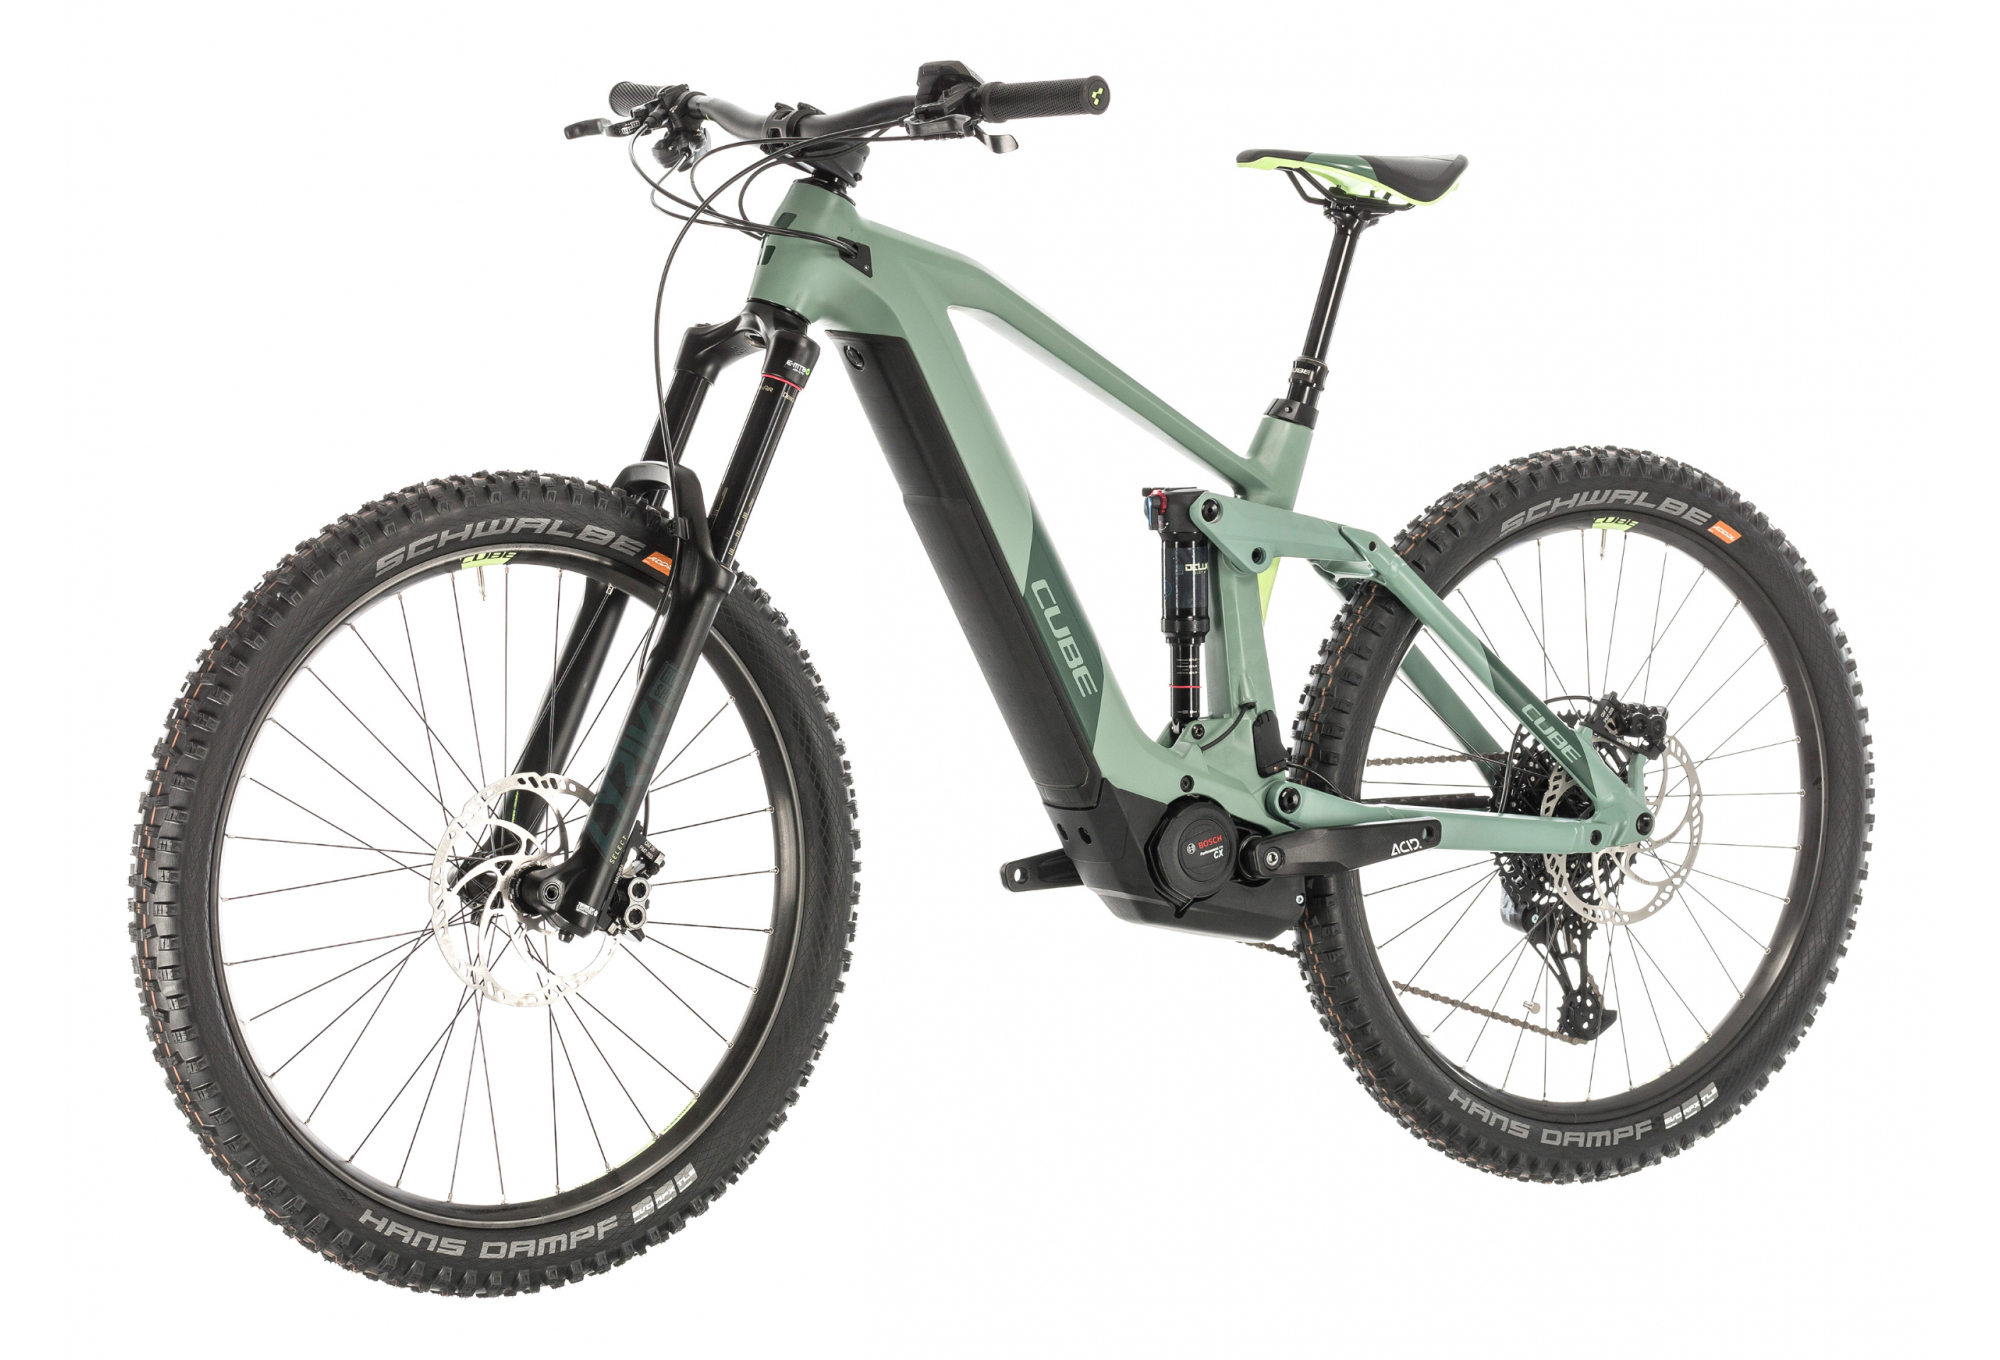 Cube Full Suspension Electric MTB Stereo Hybrid 160 HPC SL 625 Sram NX SX Eagle 12s Green 2020